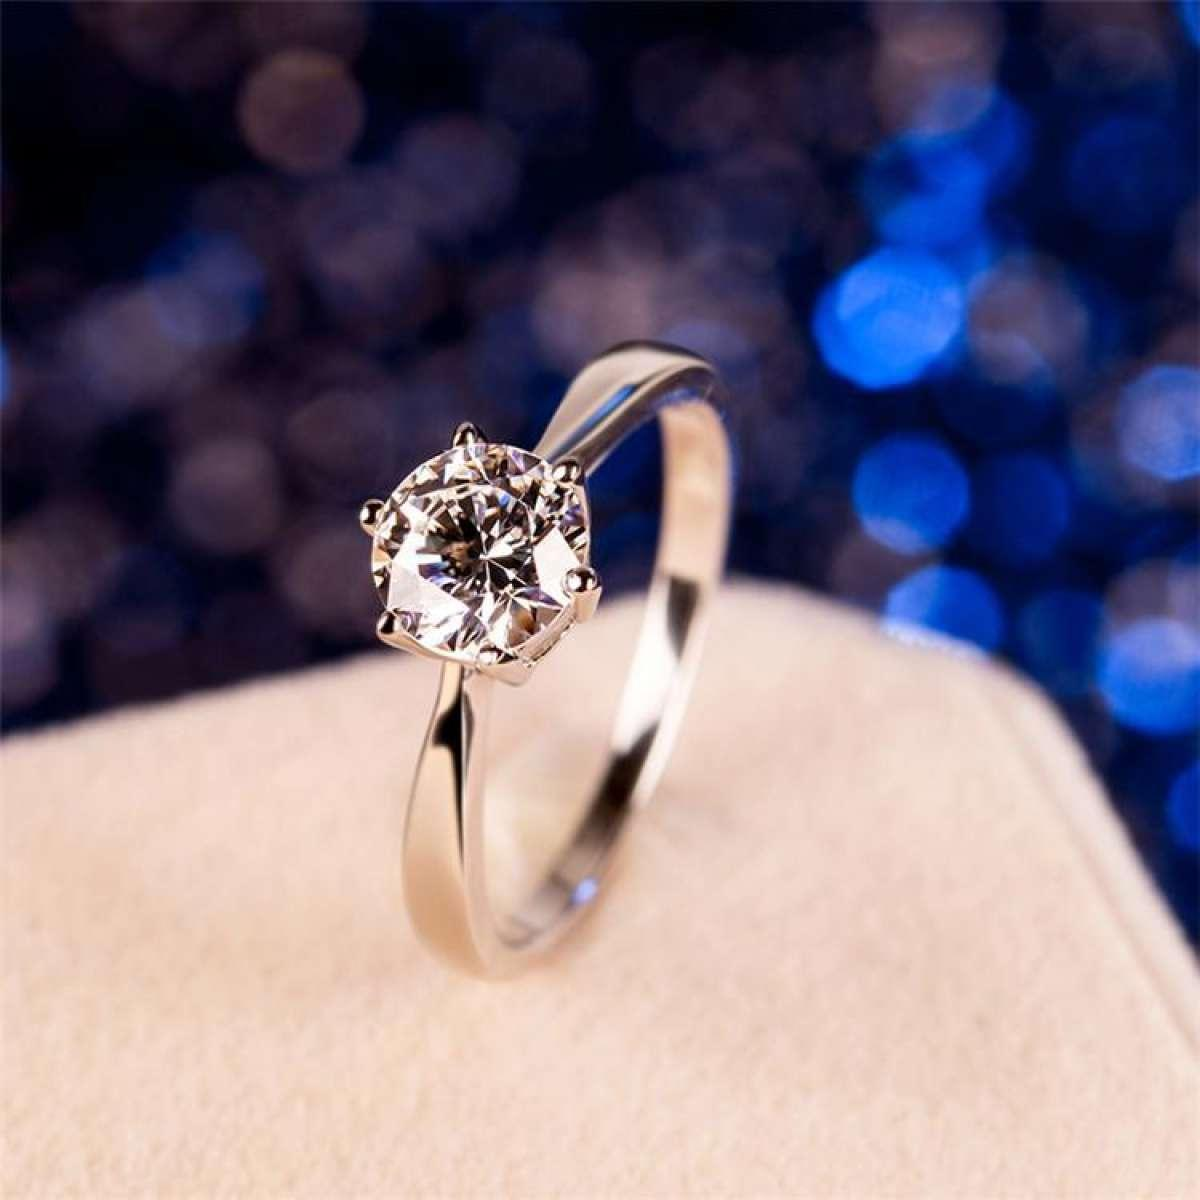 Valentine Gift Fashion Jewellery Copper AAA Zircon Wedding Engagement Promise Rings for Women / Girls